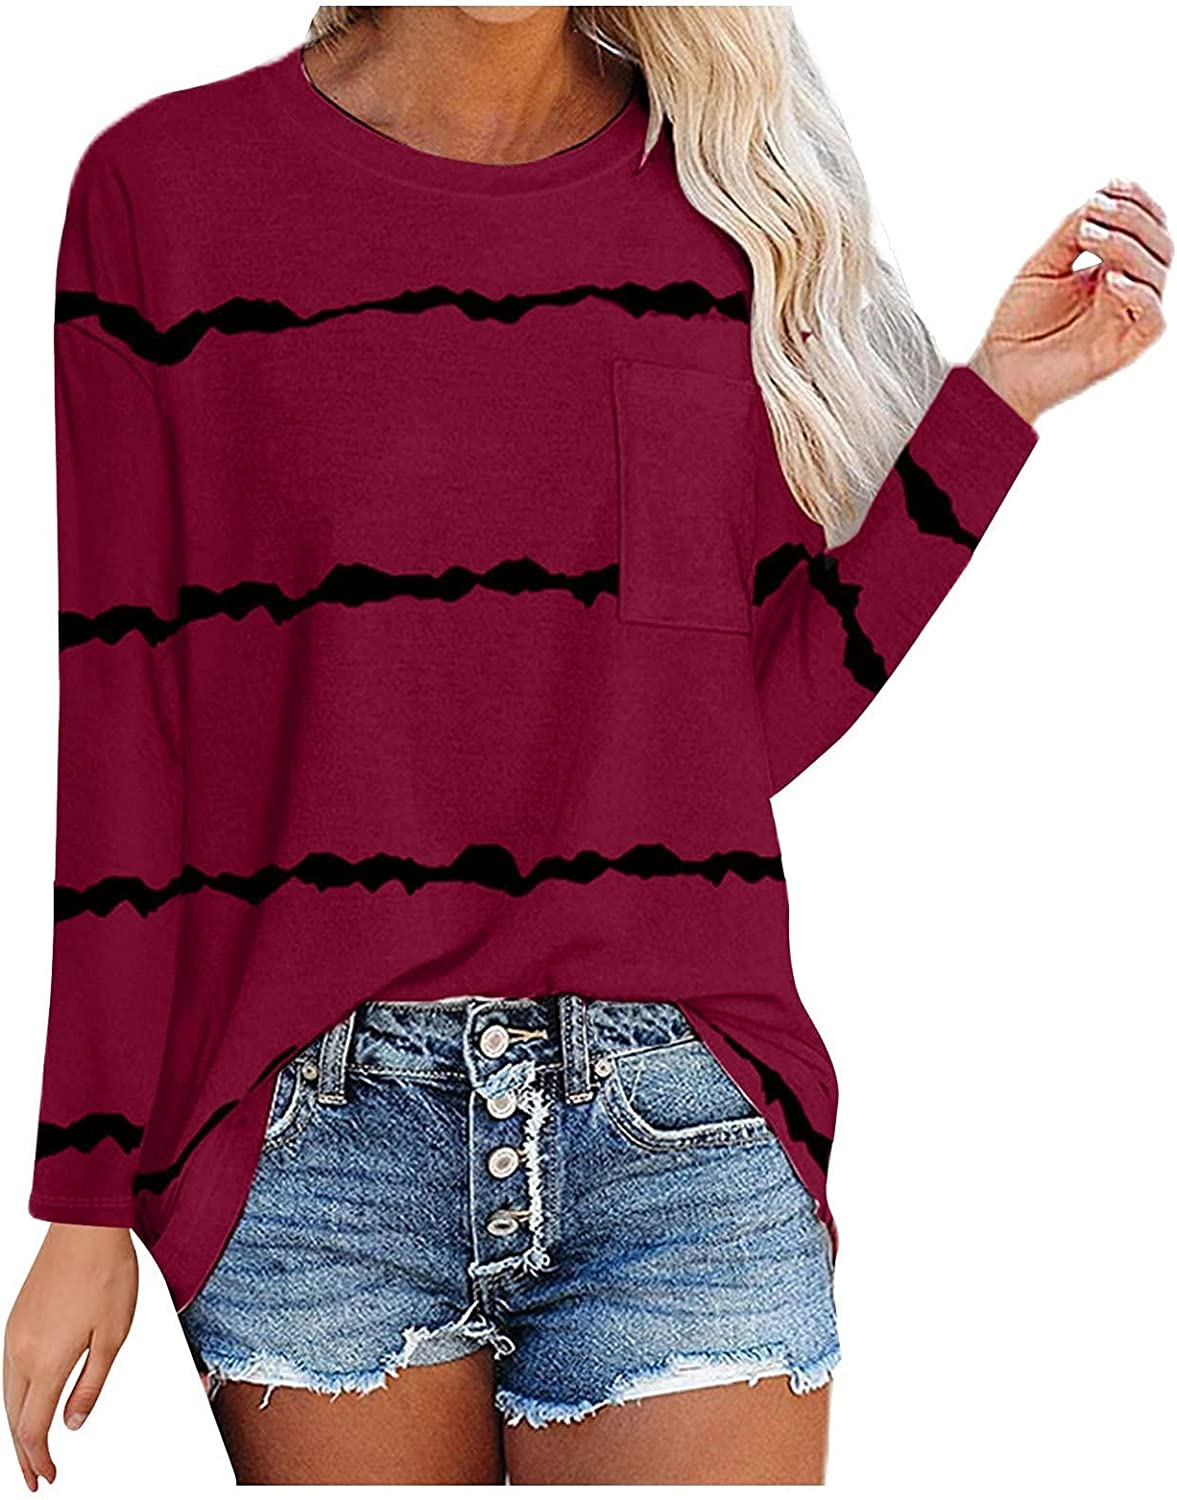 Auwer Women's Long Sleeve Basic Tees Striped Colorblock T-Shirts Casual Round Neck Tops Flowy Loose Fit Blouses with Pockets